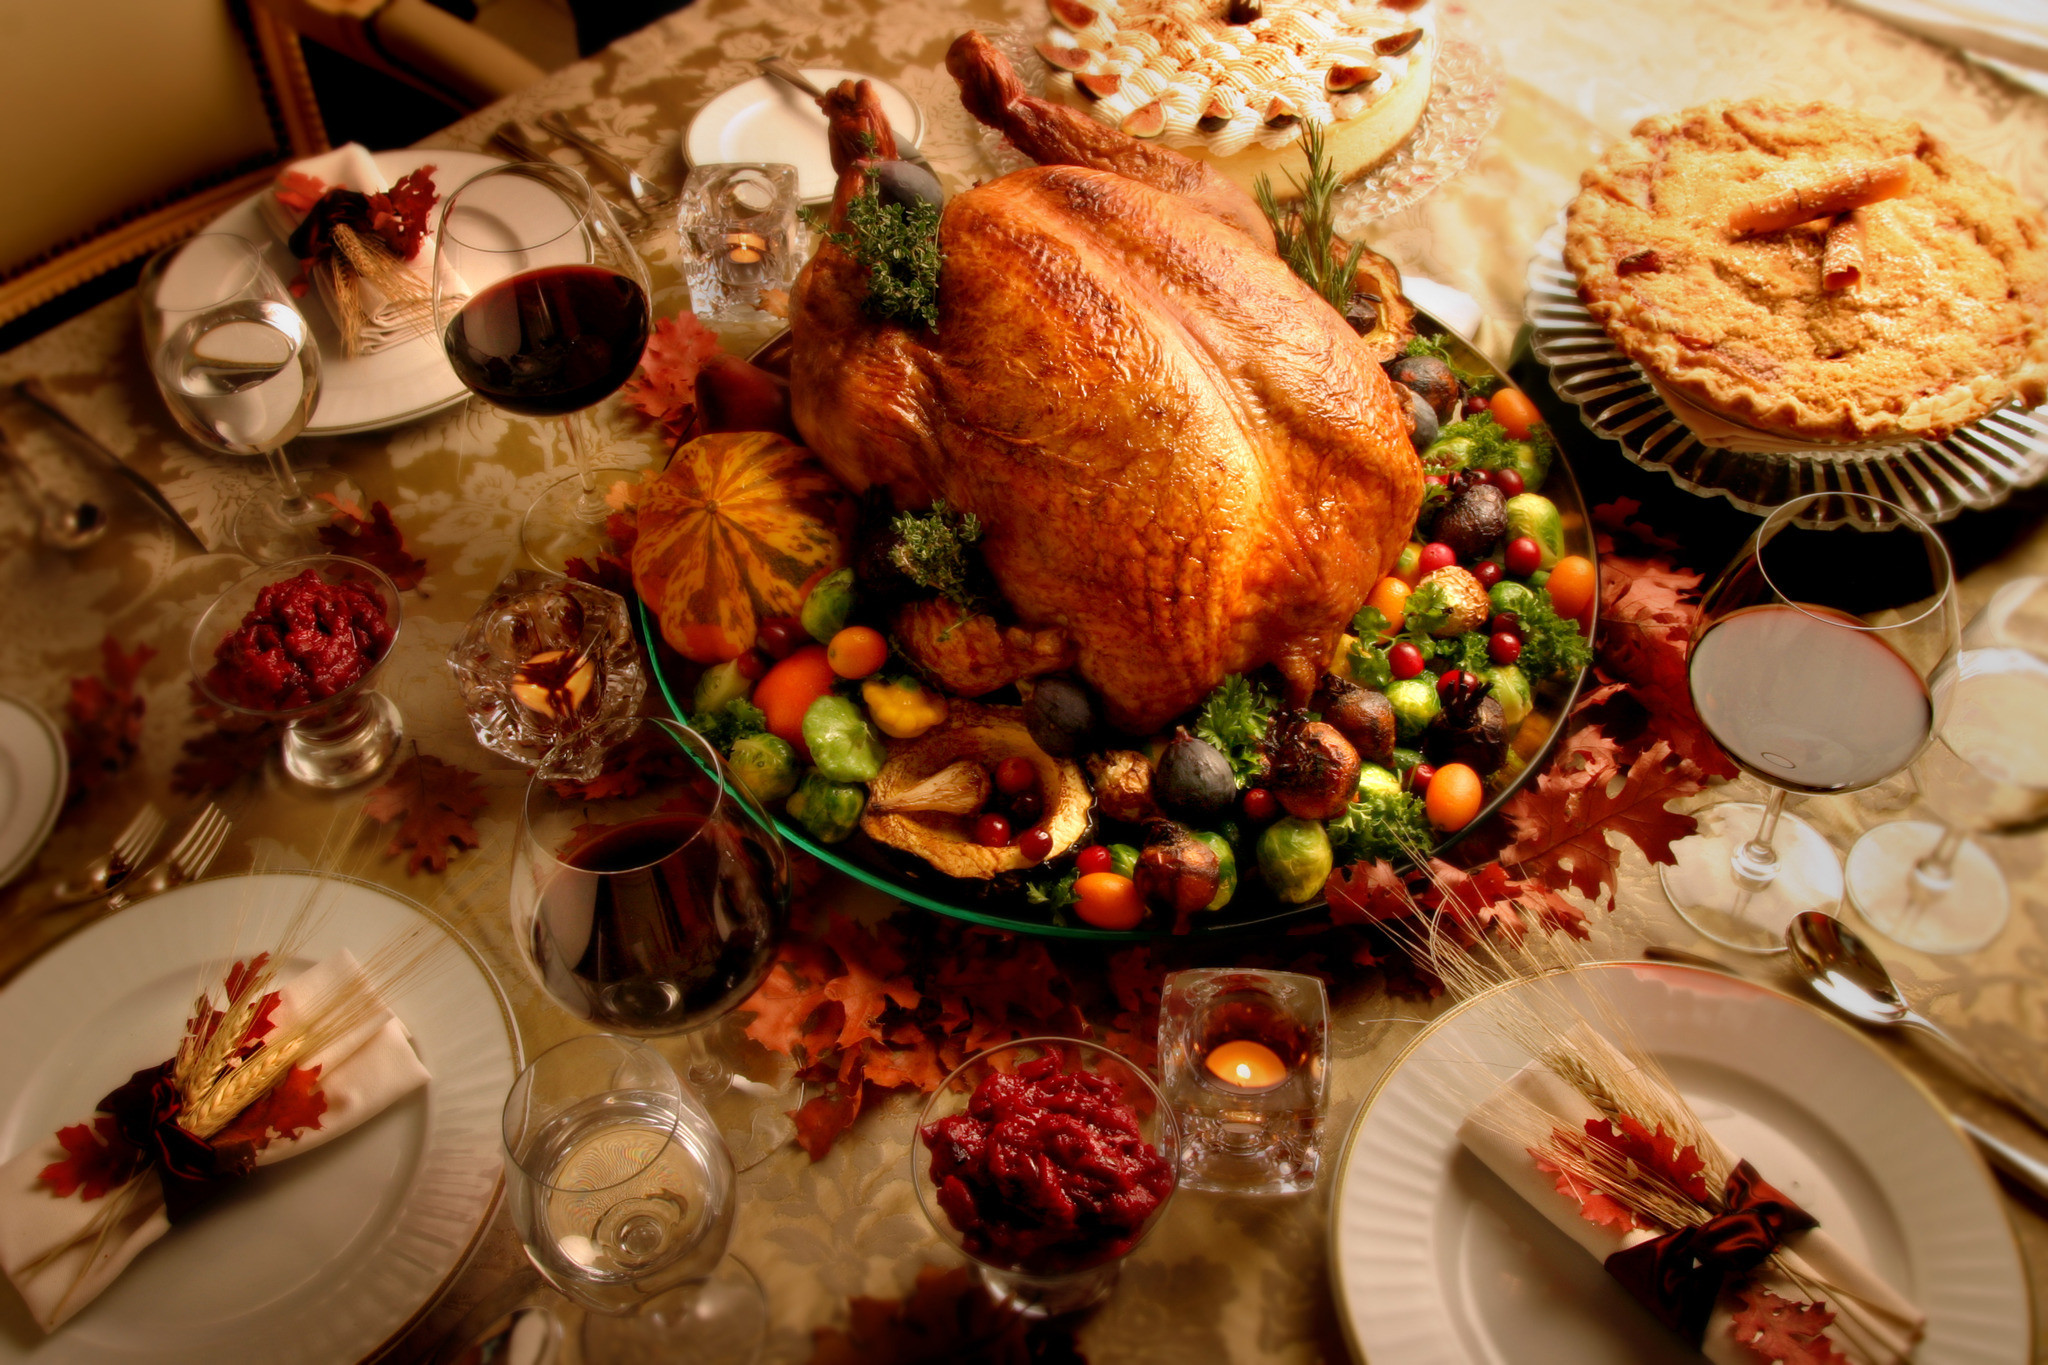 Restaurant Thanksgiving Dinner  Thanksgiving in Los Angeles Including Food Events and More